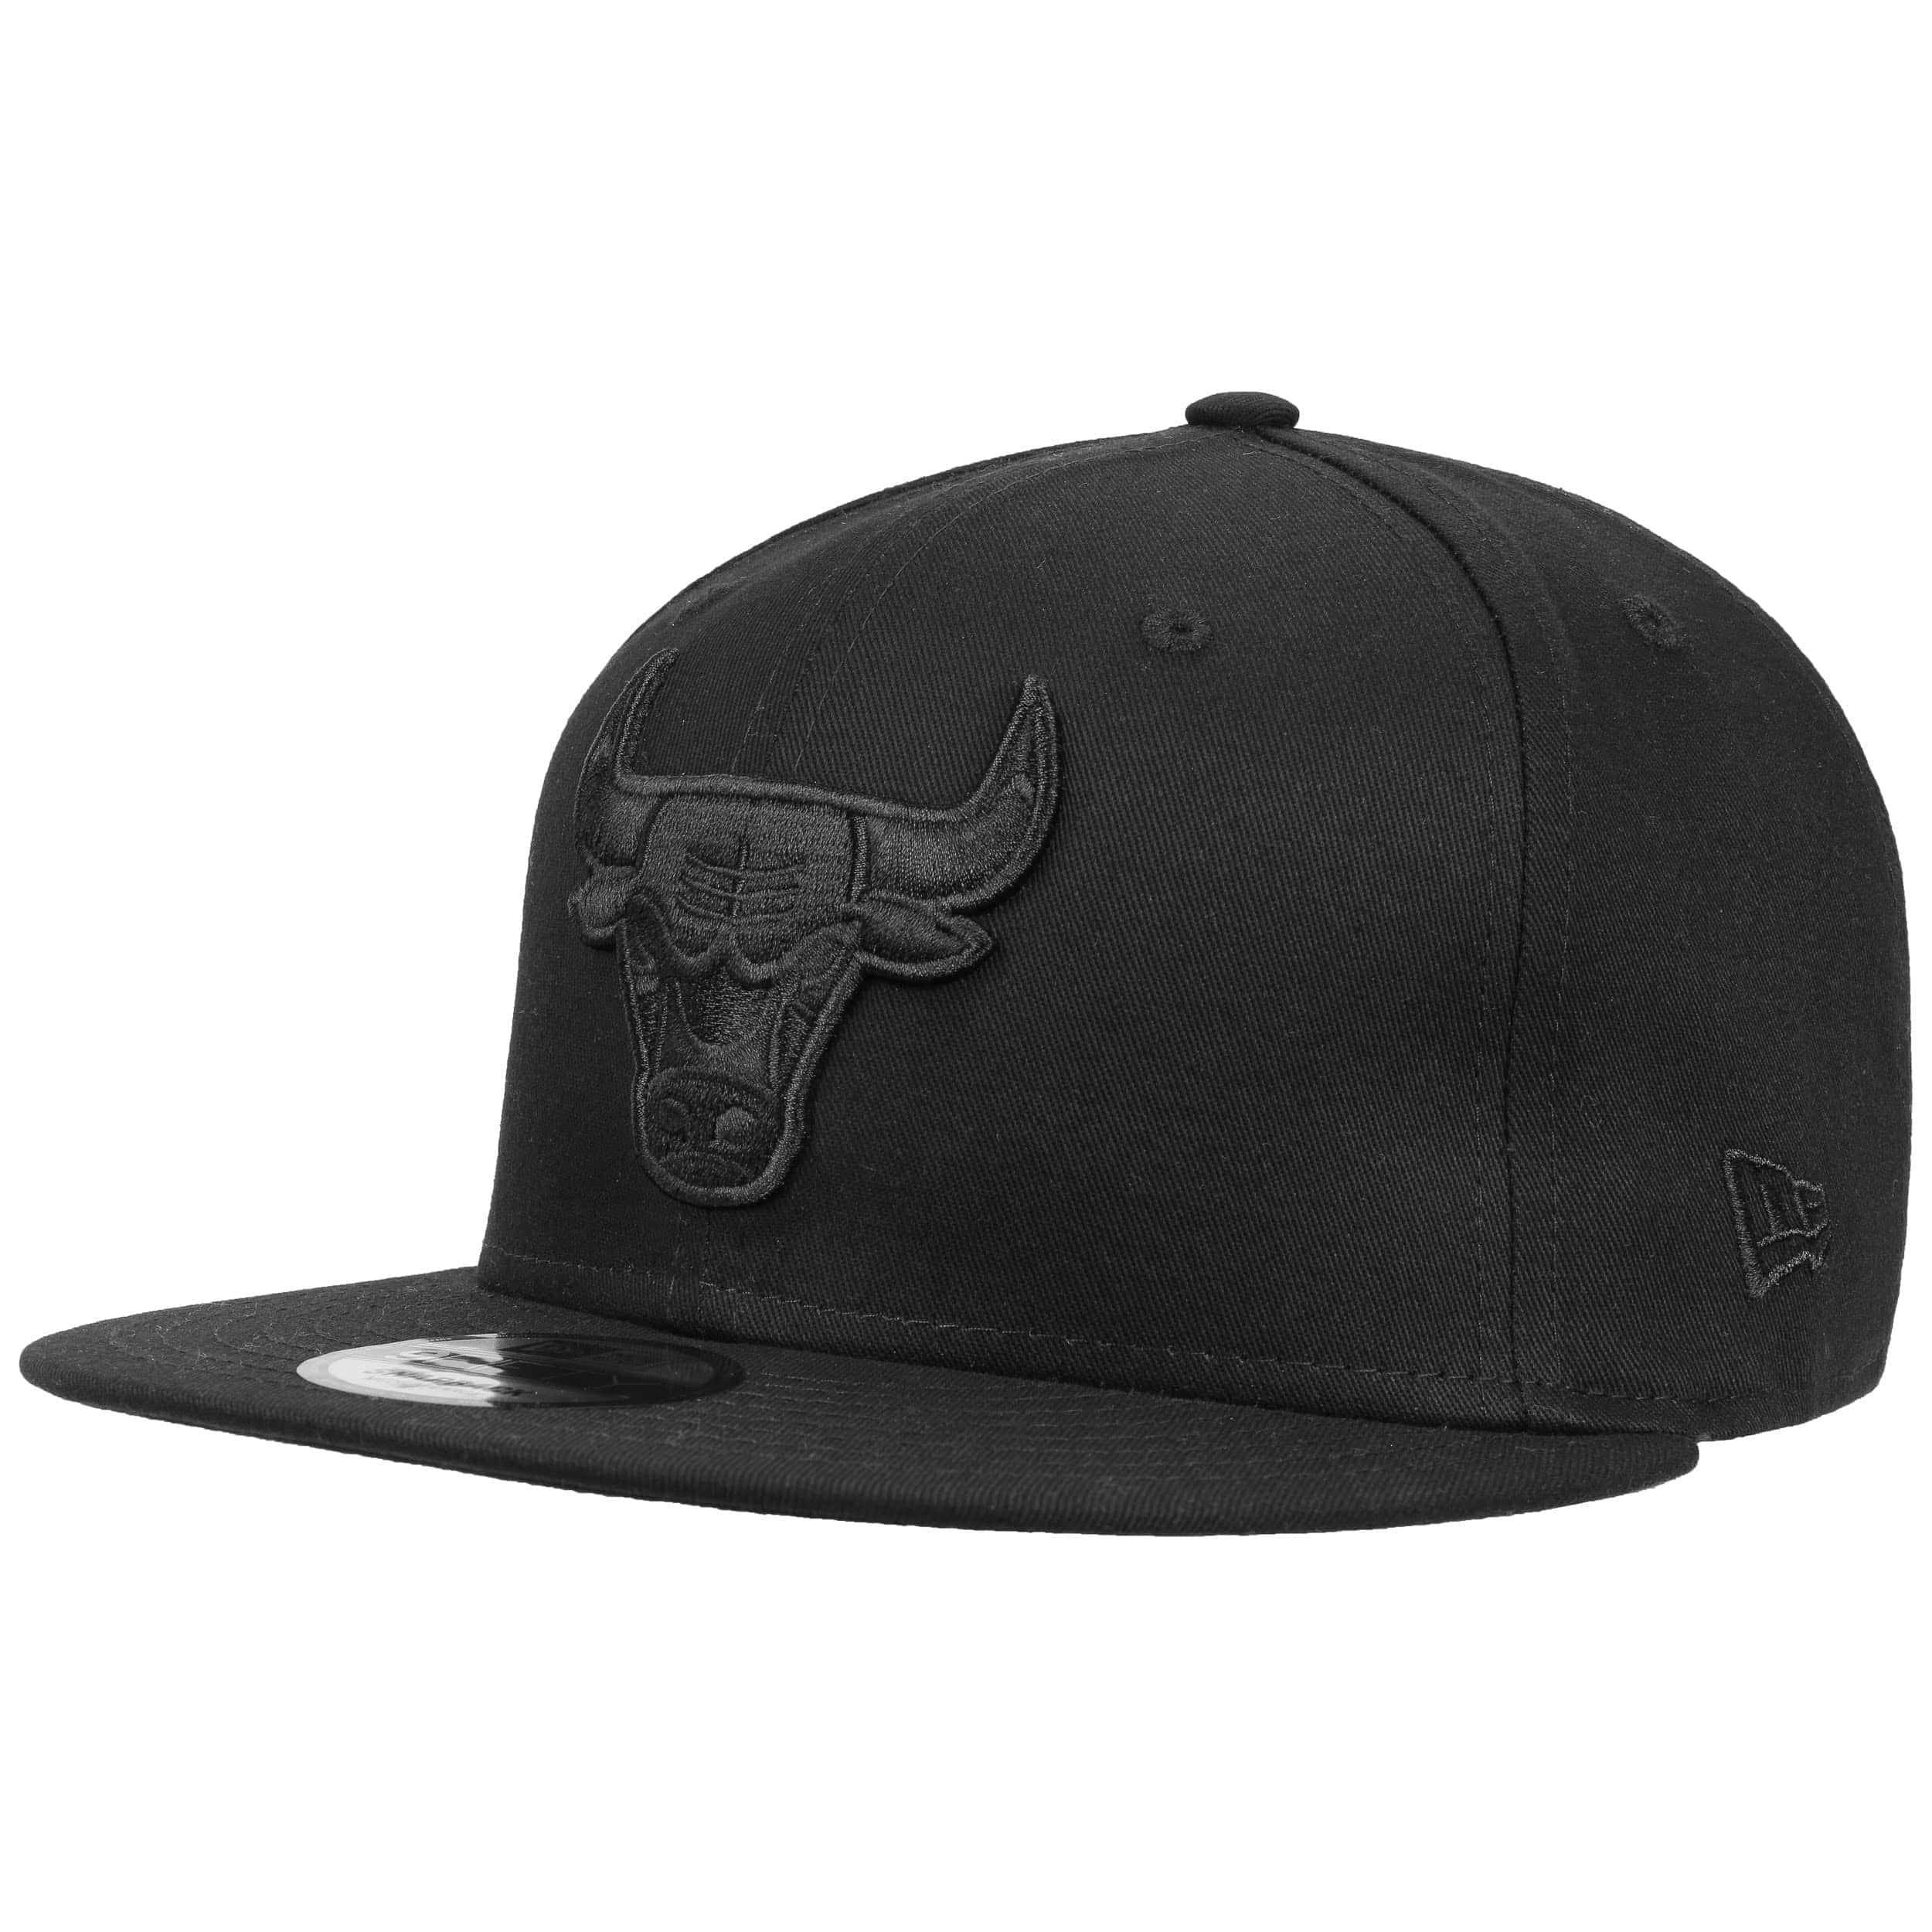 gorra 9fifty bob chicago bulls by new era gorras. Black Bedroom Furniture Sets. Home Design Ideas